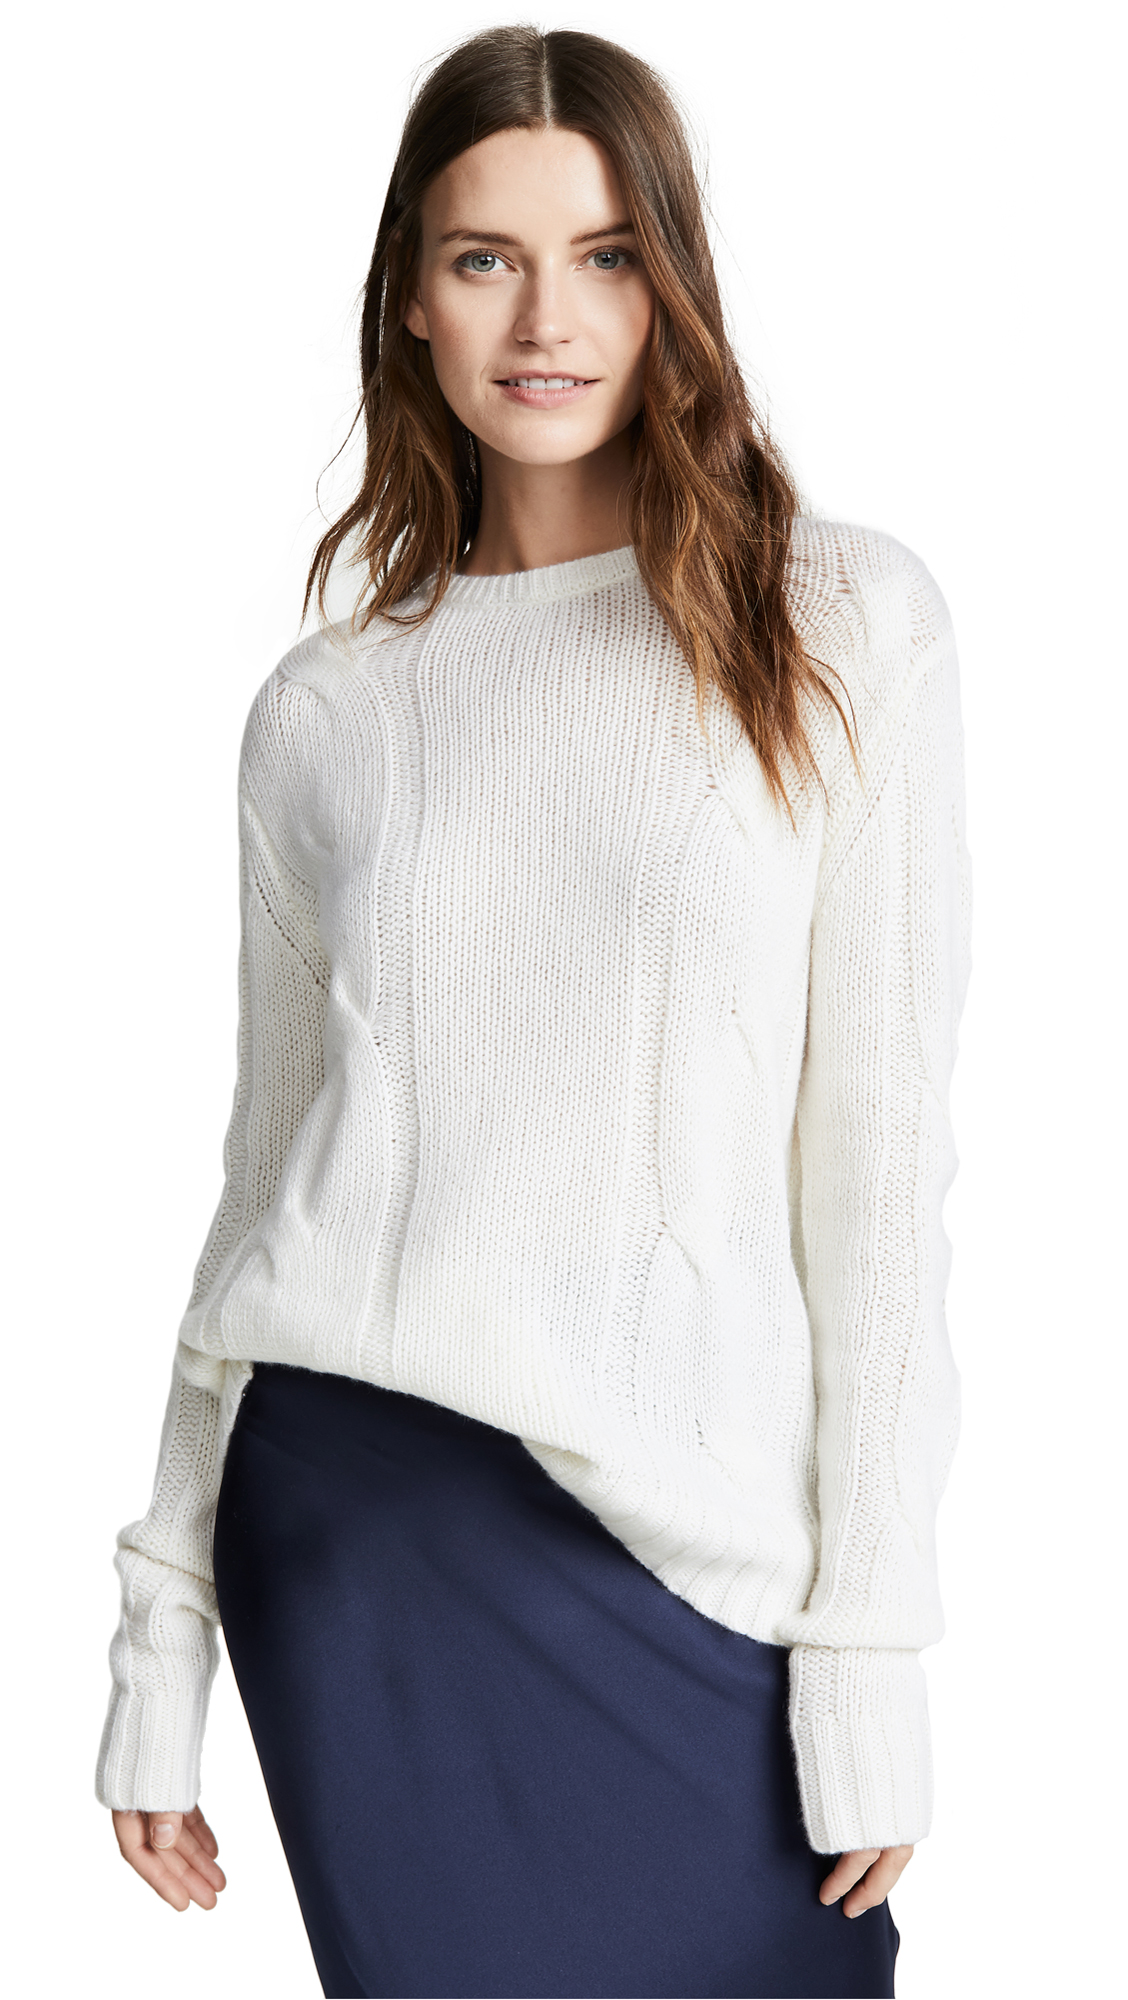 SABLYN Kate Cable Knit Sweater in Milk